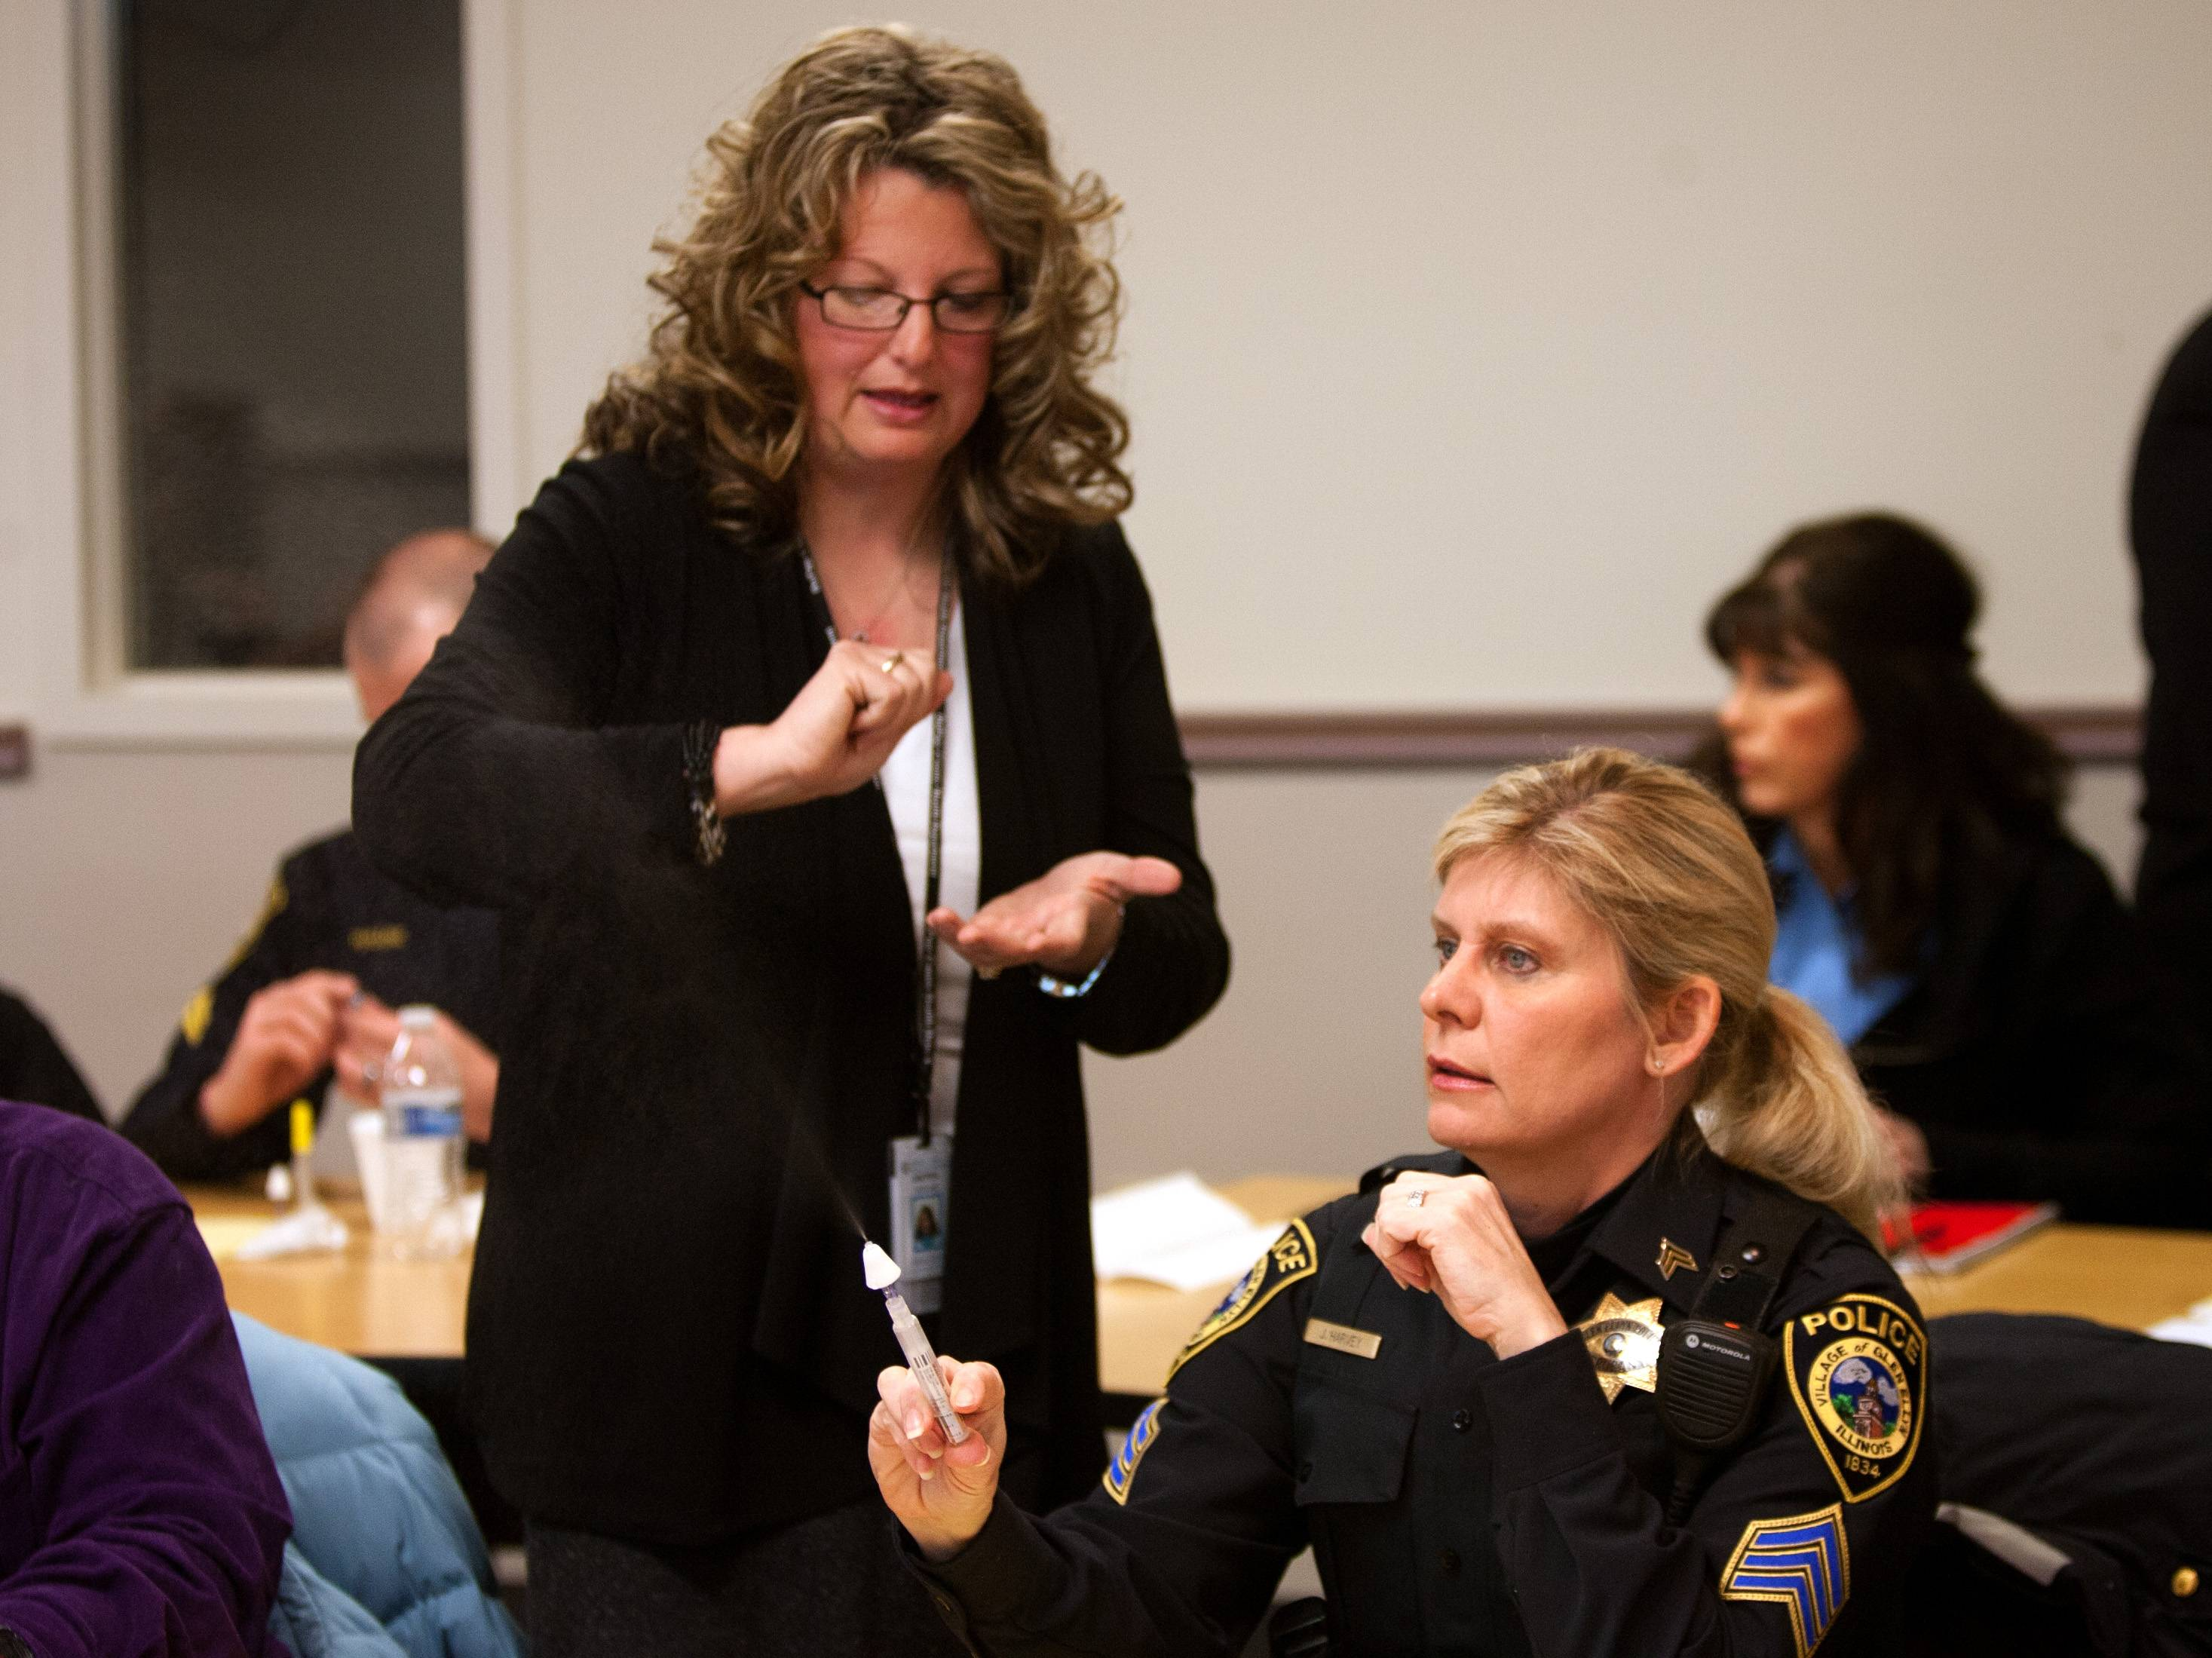 DuPage County health officials are training police officers how to administer Narcan, an opiate overdose reversal drug. Andrea Gargani, left, director of community health services, teaches the Narcan application process to Glen Ellyn police Sgt. Jean Harvey.